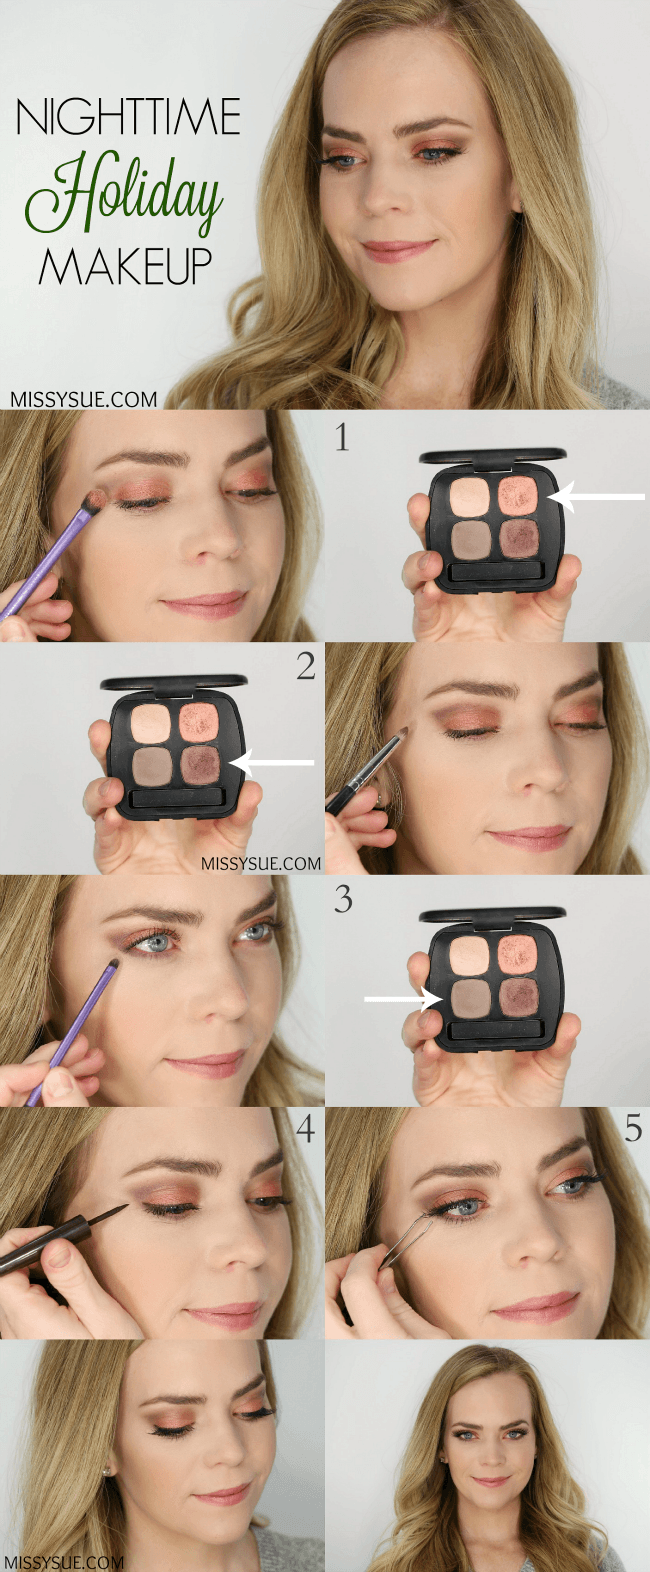 nighttime-holiday-makeup-missysue